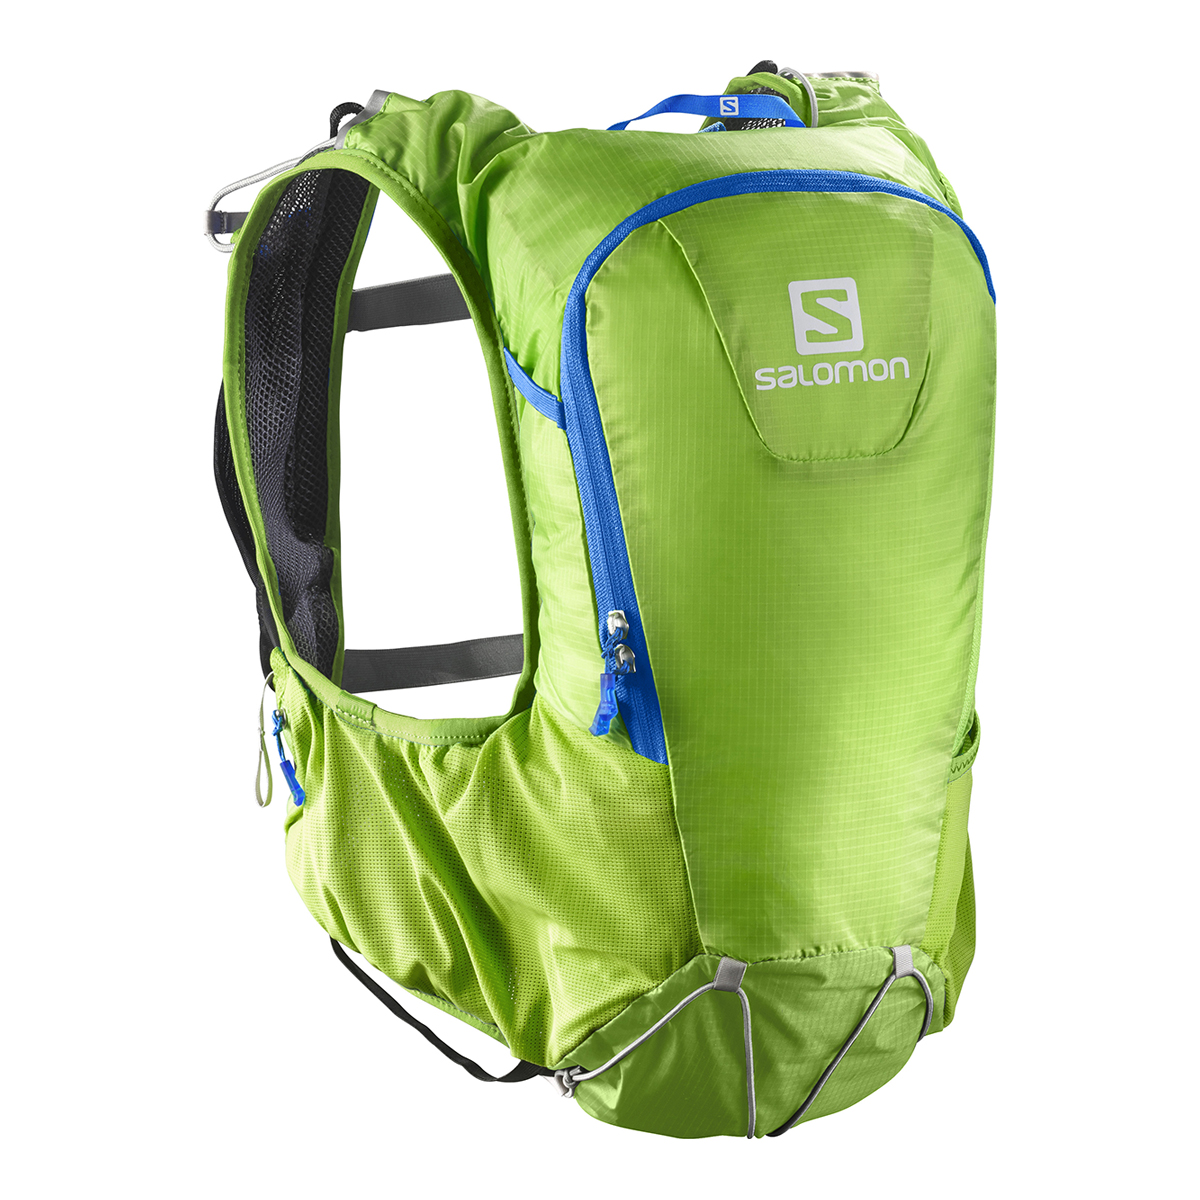 Salomon Skin Pro 10 Set | Running Backpacks